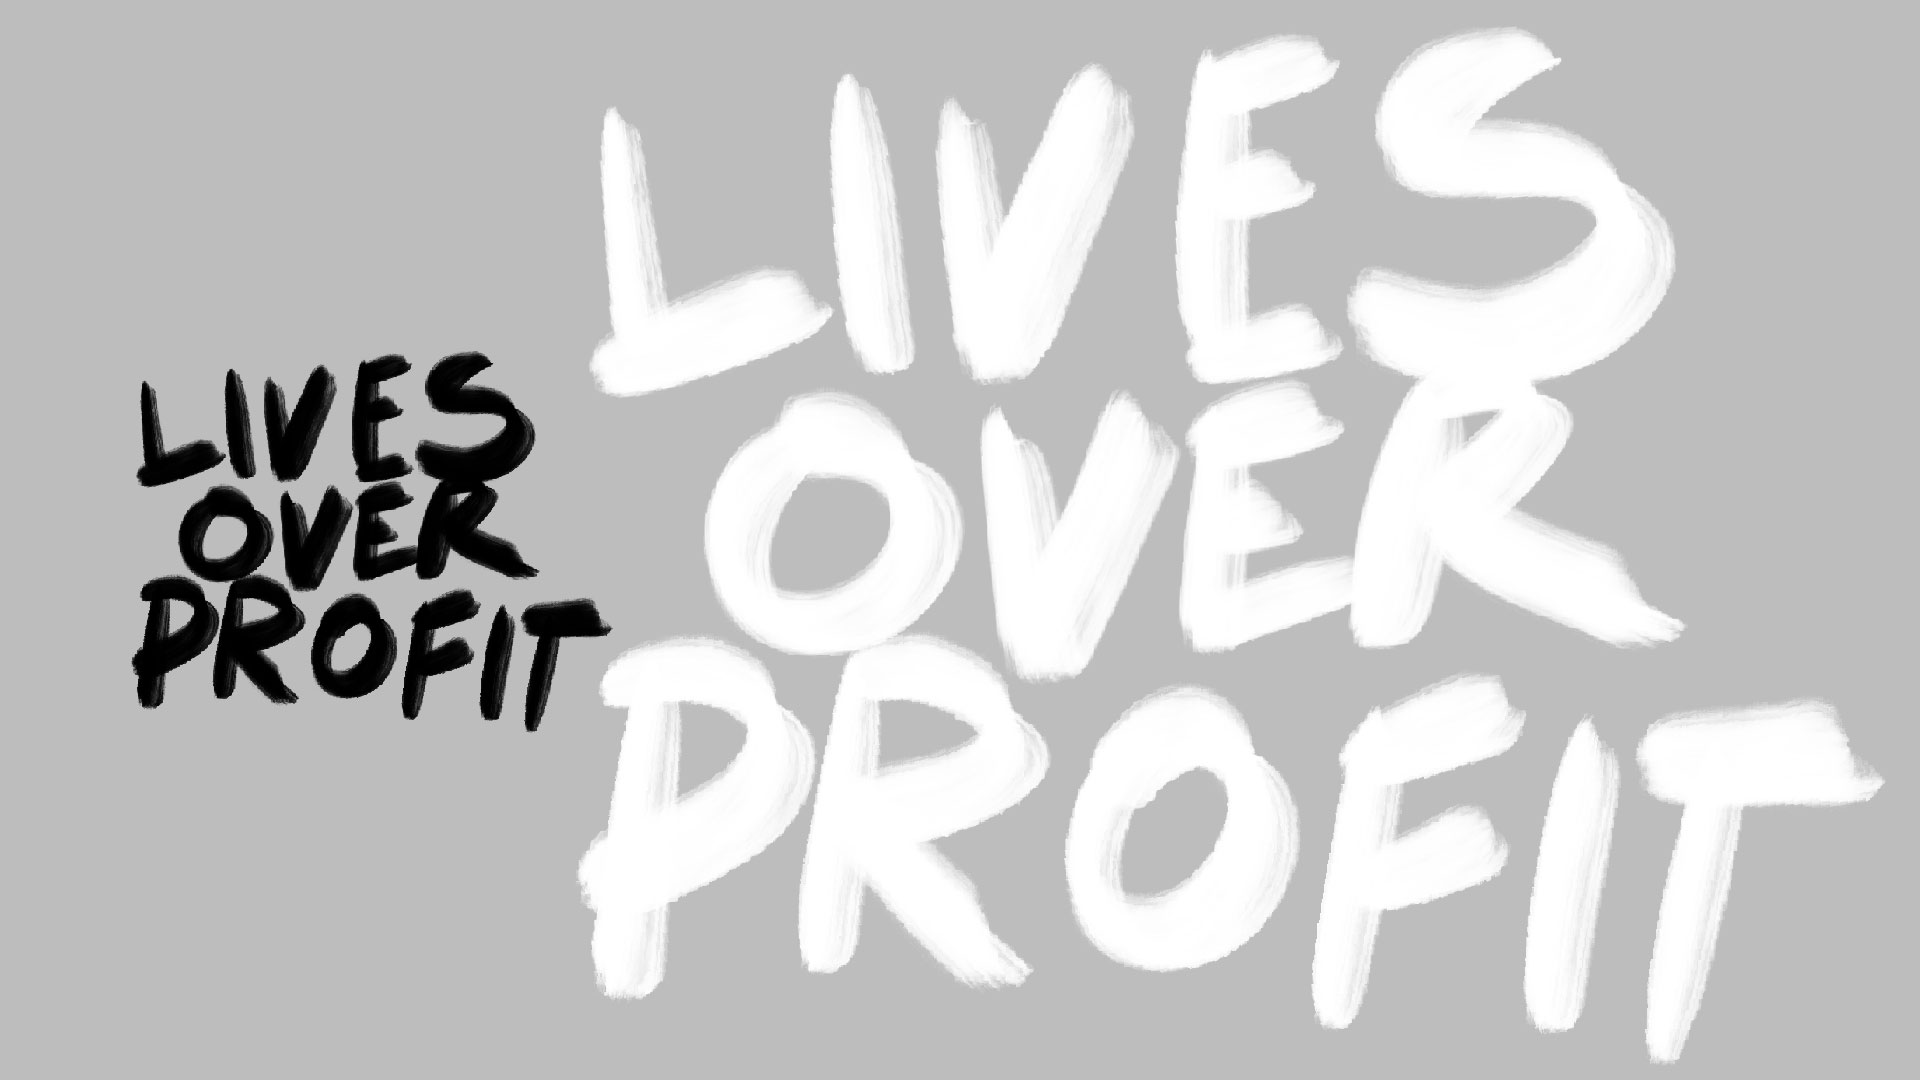 Lives over profit